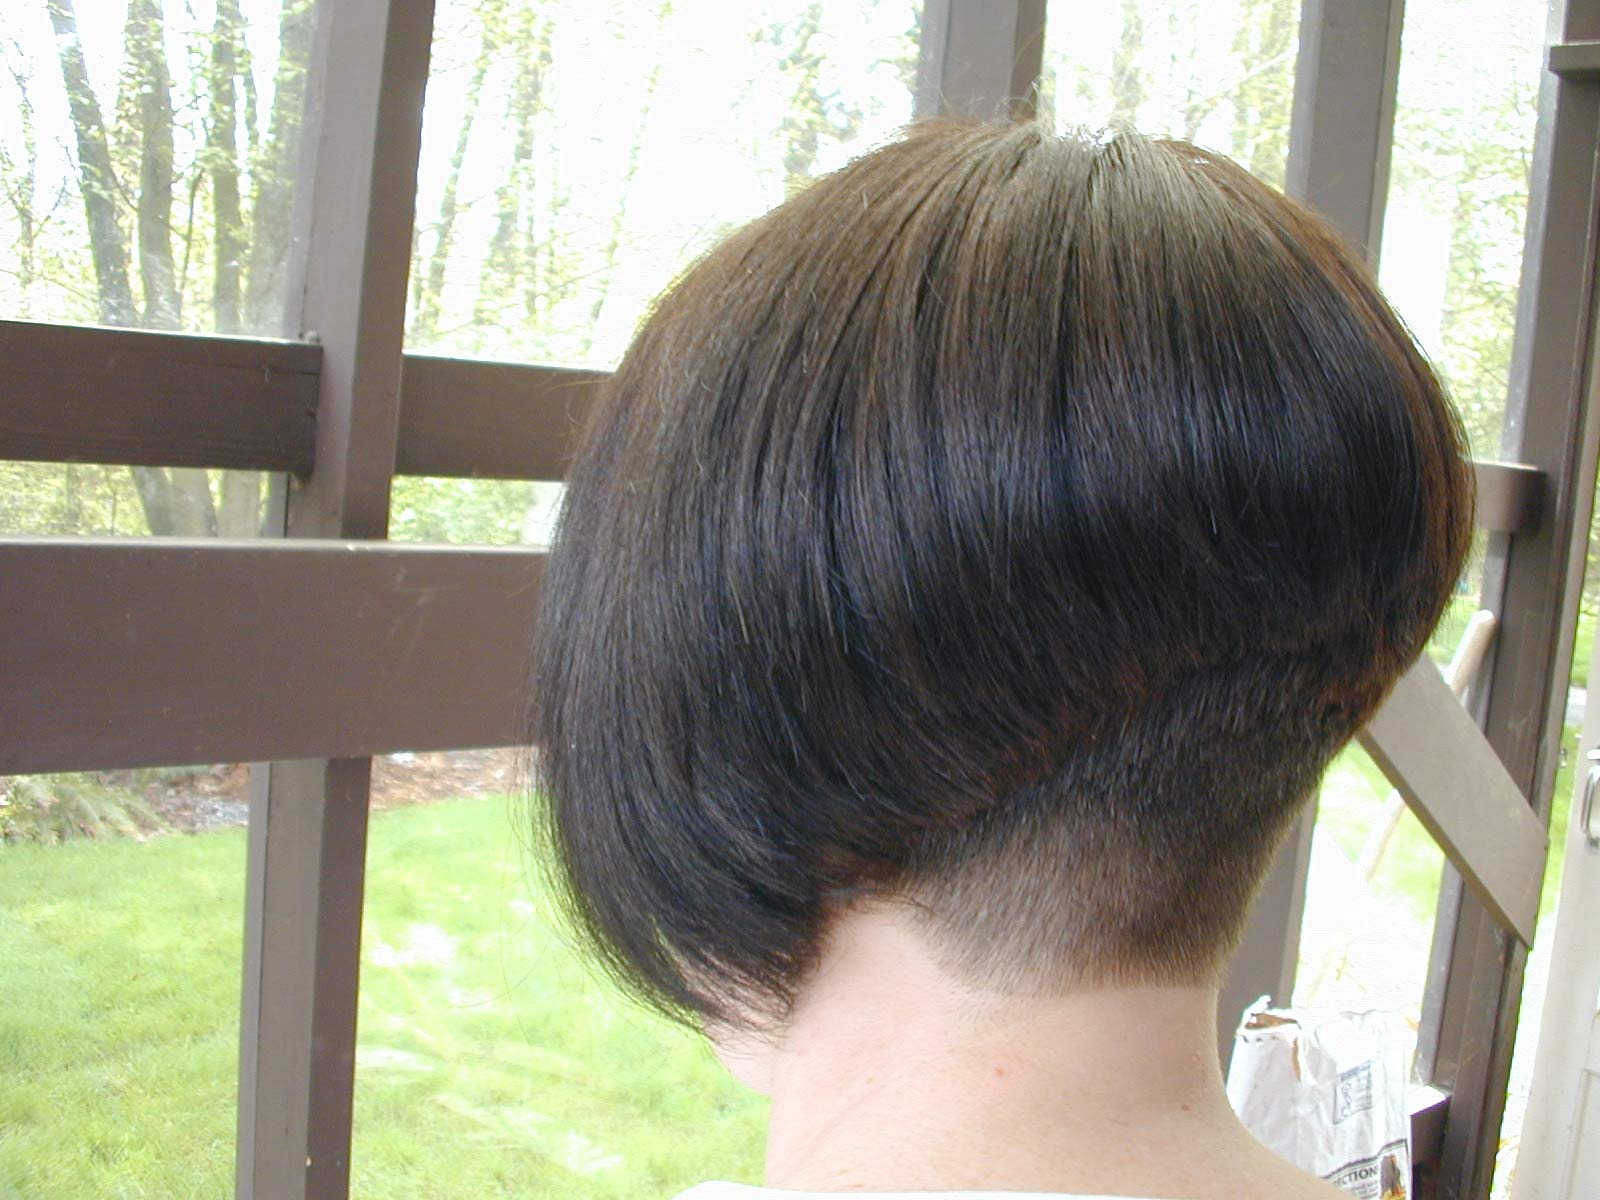 Enjoyable Back Of Short Bob Hairstyles Short Hairstyles For Women And Man Hairstyle Inspiration Daily Dogsangcom